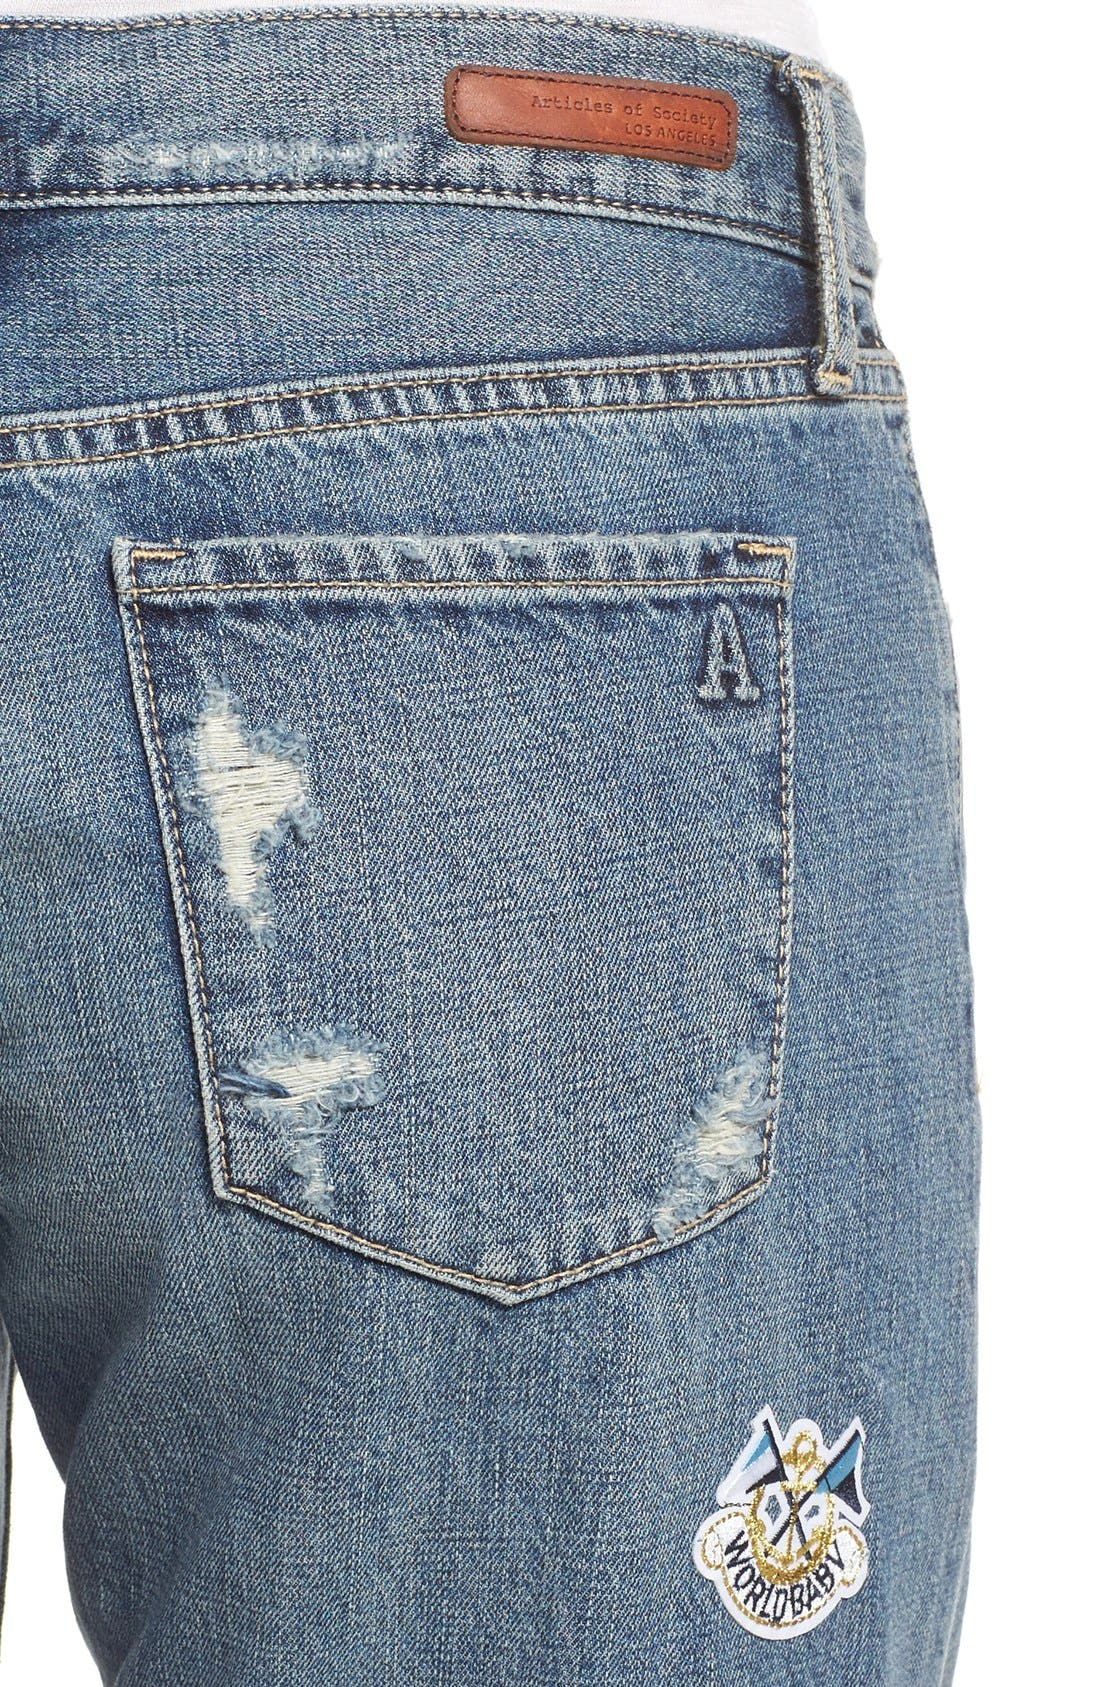 Alternate Image 5  - Articles of Society Janis Destroyed Boyfriend Jeans with Patches